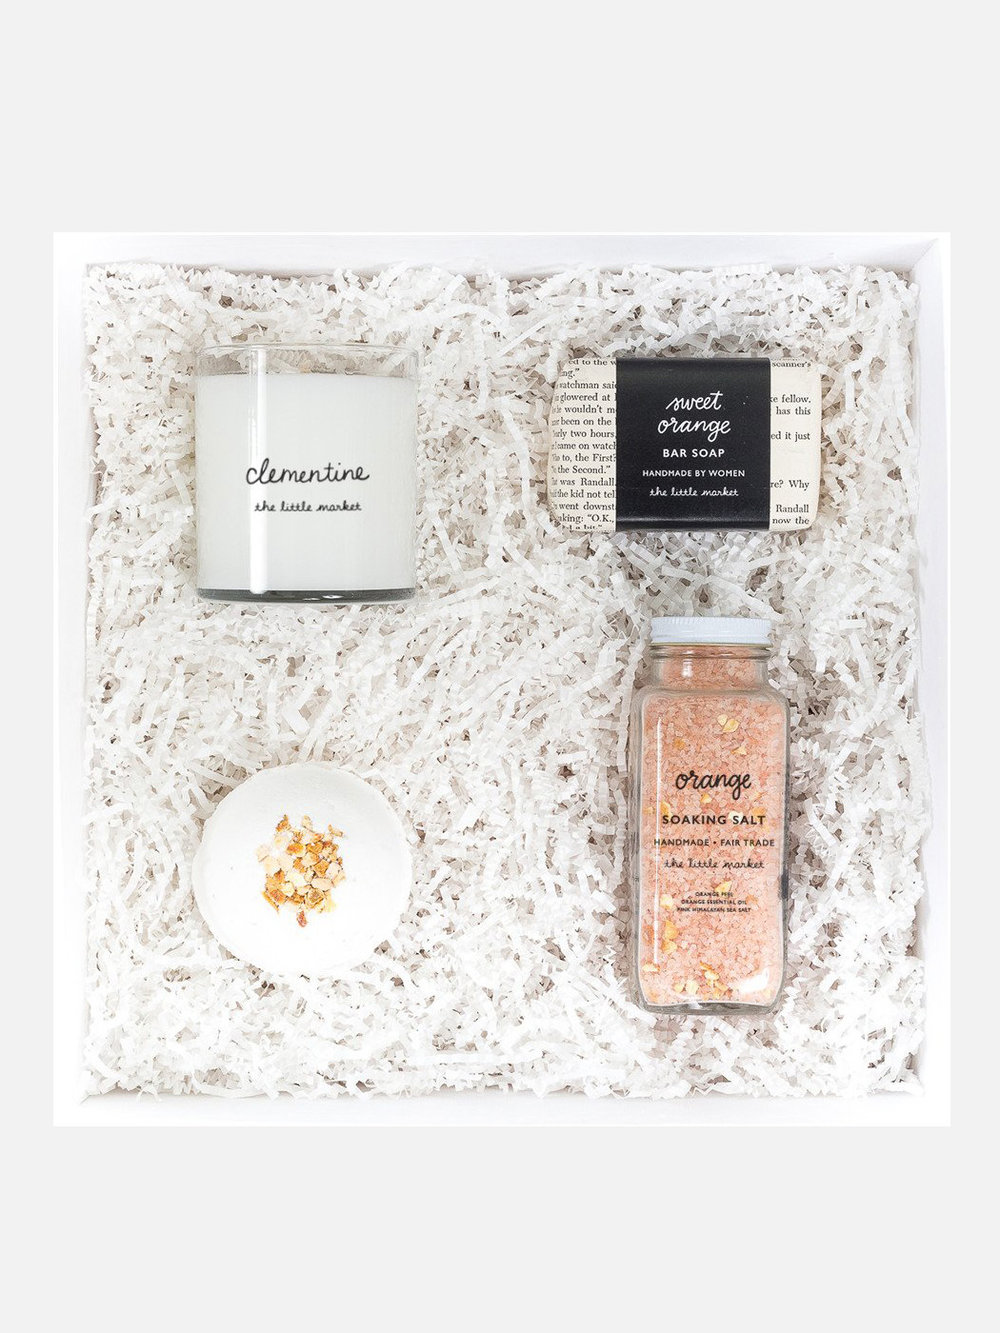 Orange Spa Gift Box from The Little Market